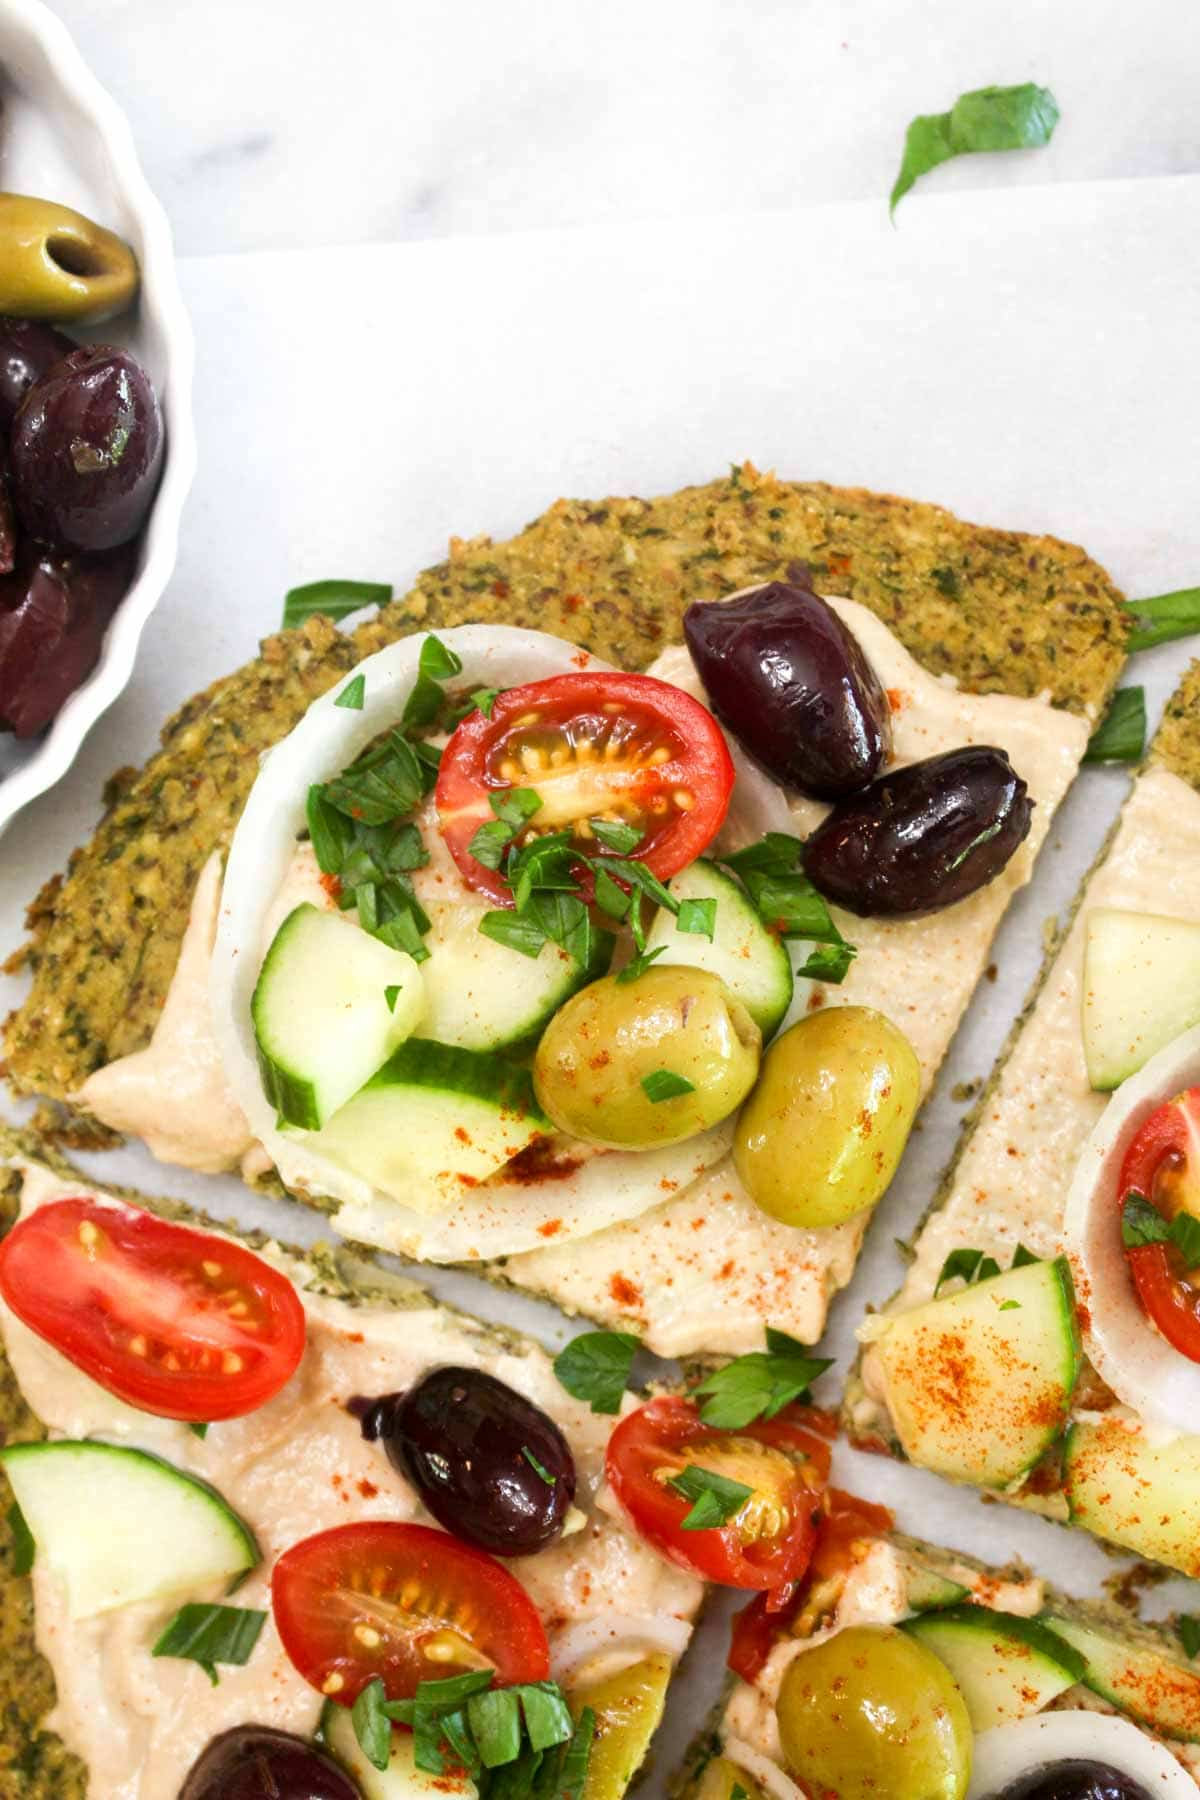 A a closeup of a slice of falafel crust topped with hummus, olives, onion, tomatoes, and parsley.